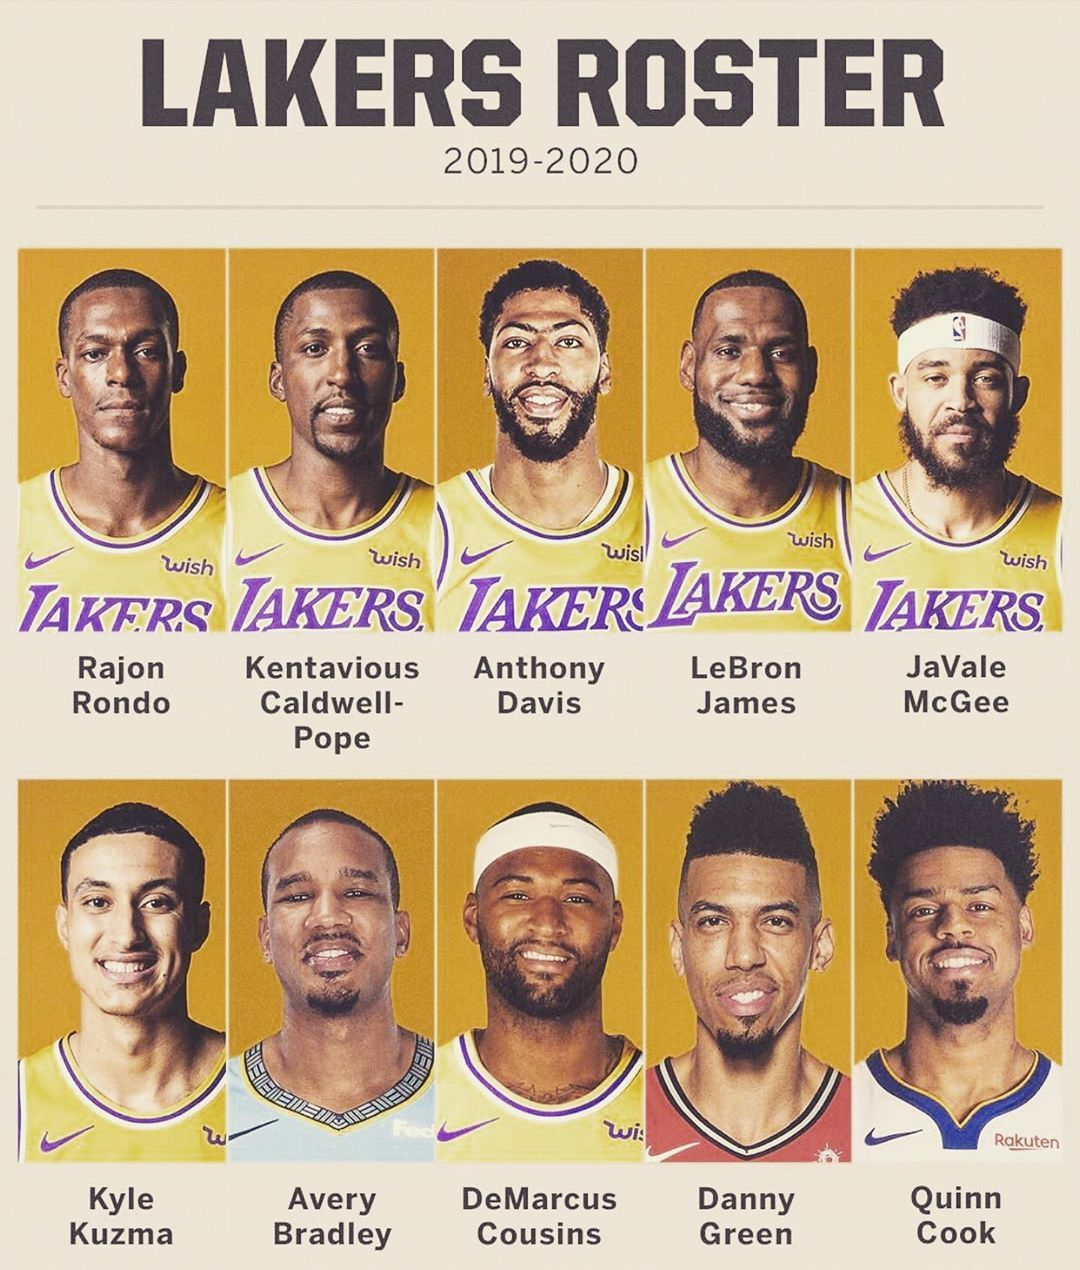 Lebron James On Instagram Predict The Lakers 2019 20 Record Lebron James Nba Basketball Teams Lakers Team